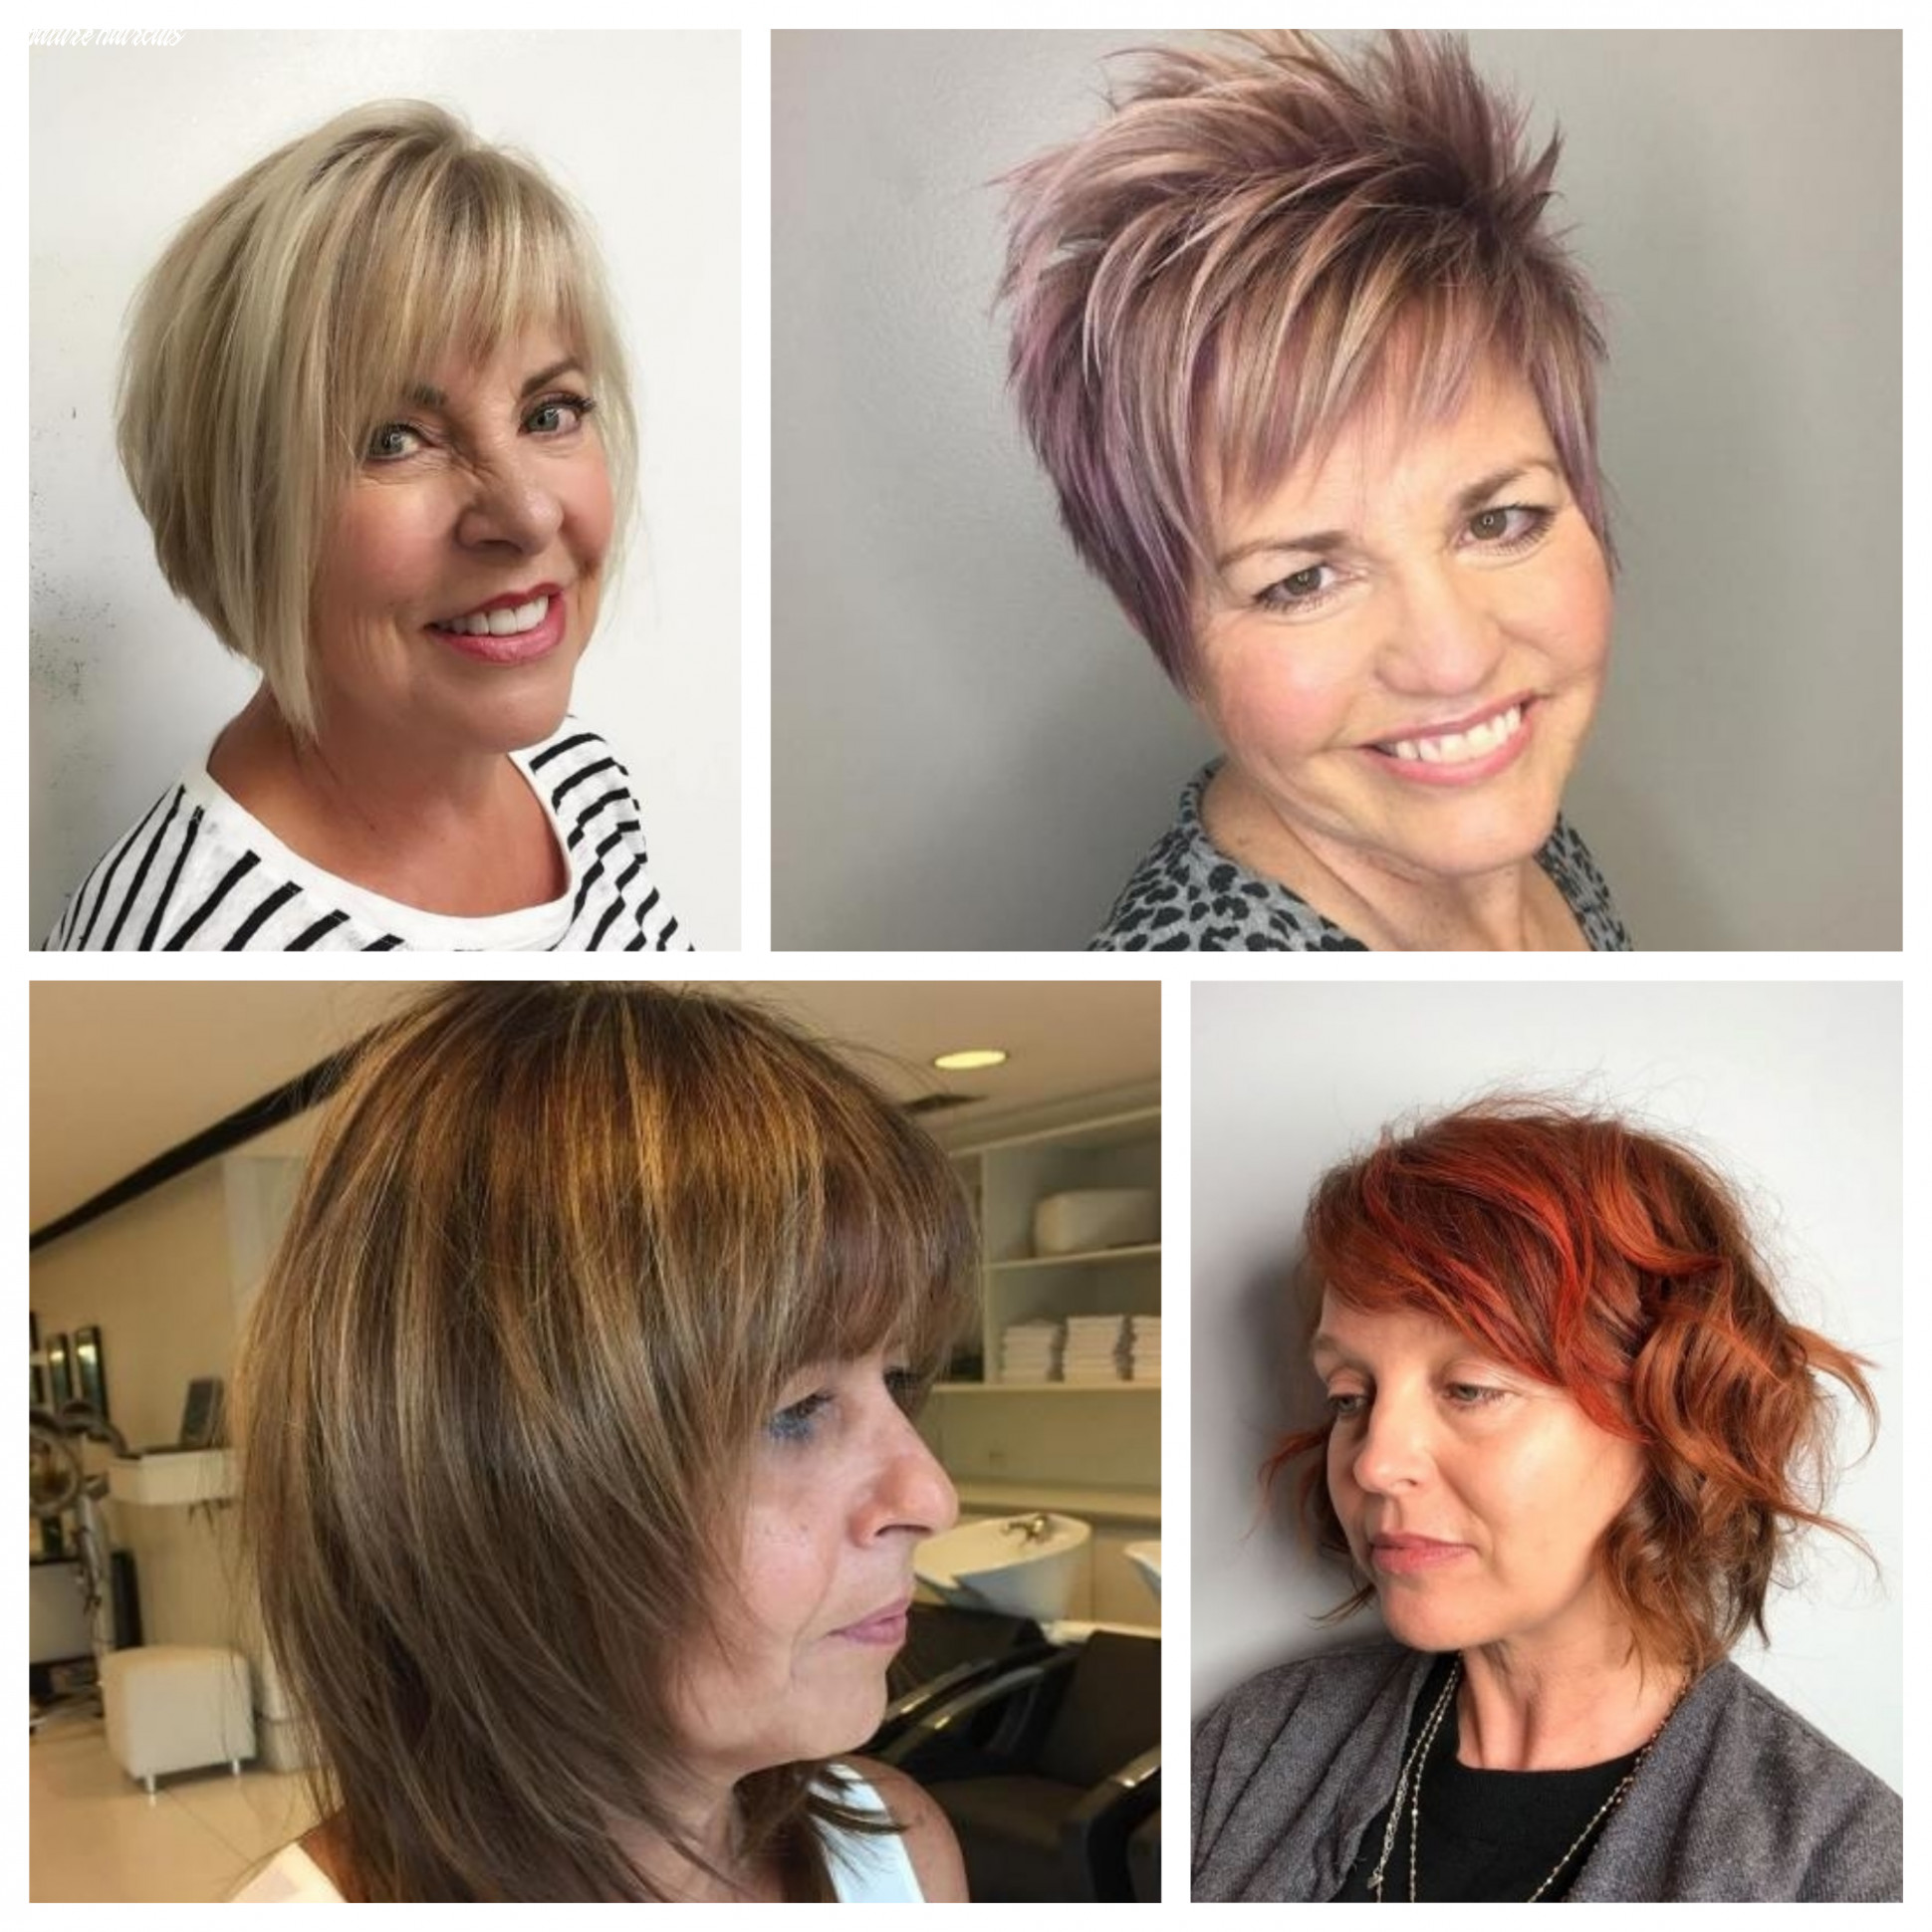 Hairstyles for Mature Women   12 Haircuts, Hairstyles and Hair ...